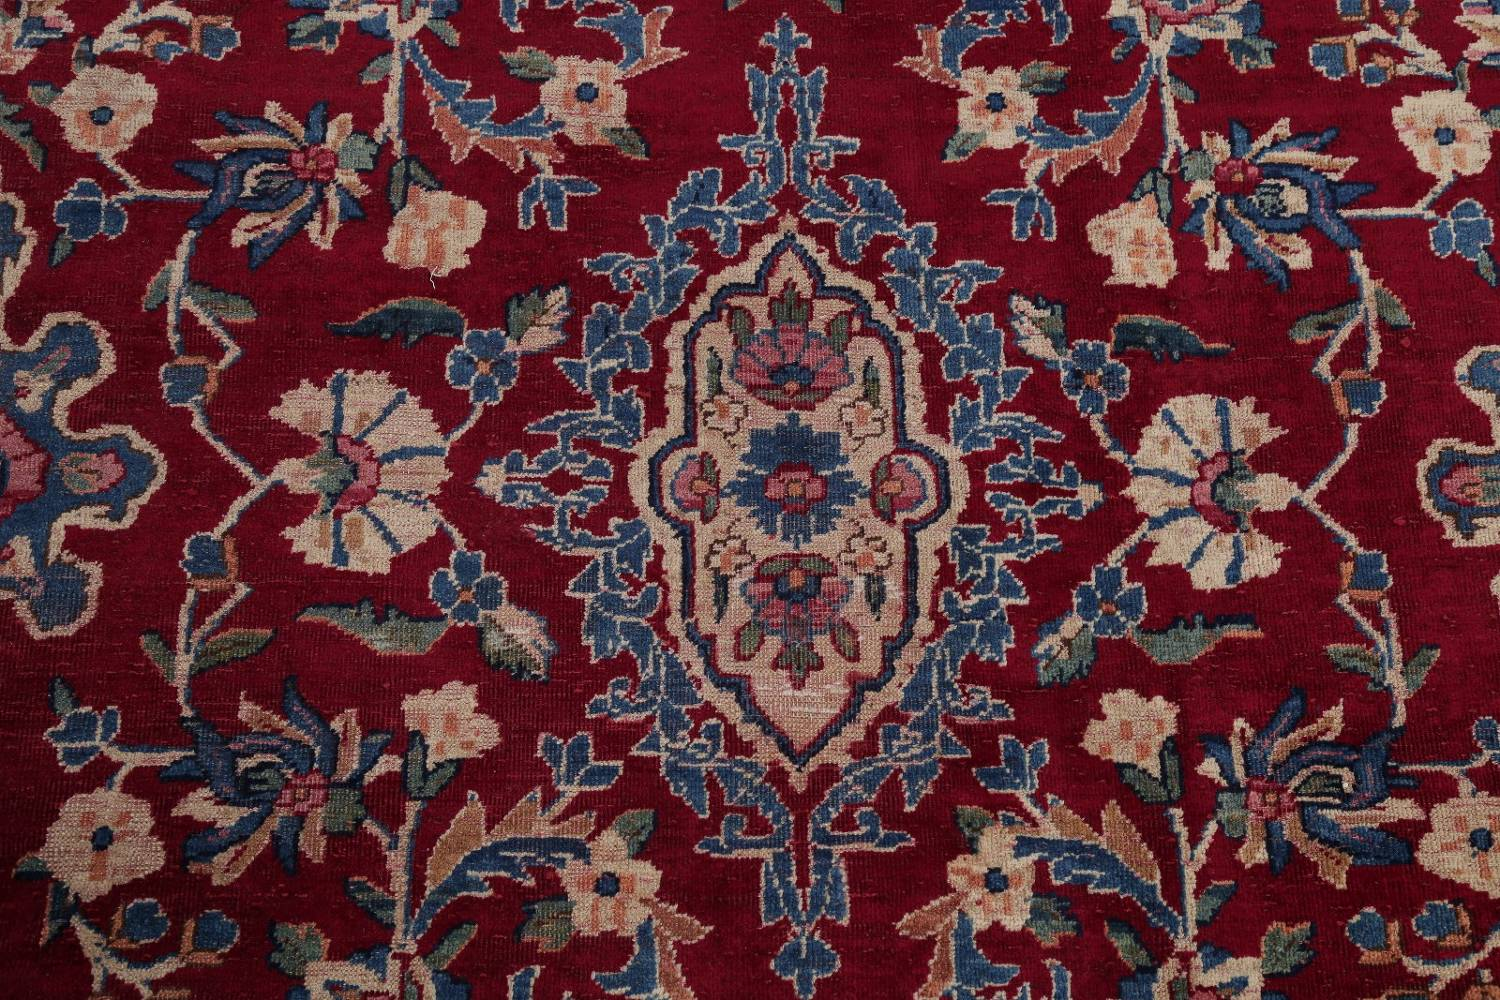 All-Over Floral 11x16 Yazd Persian Area Rug image 11